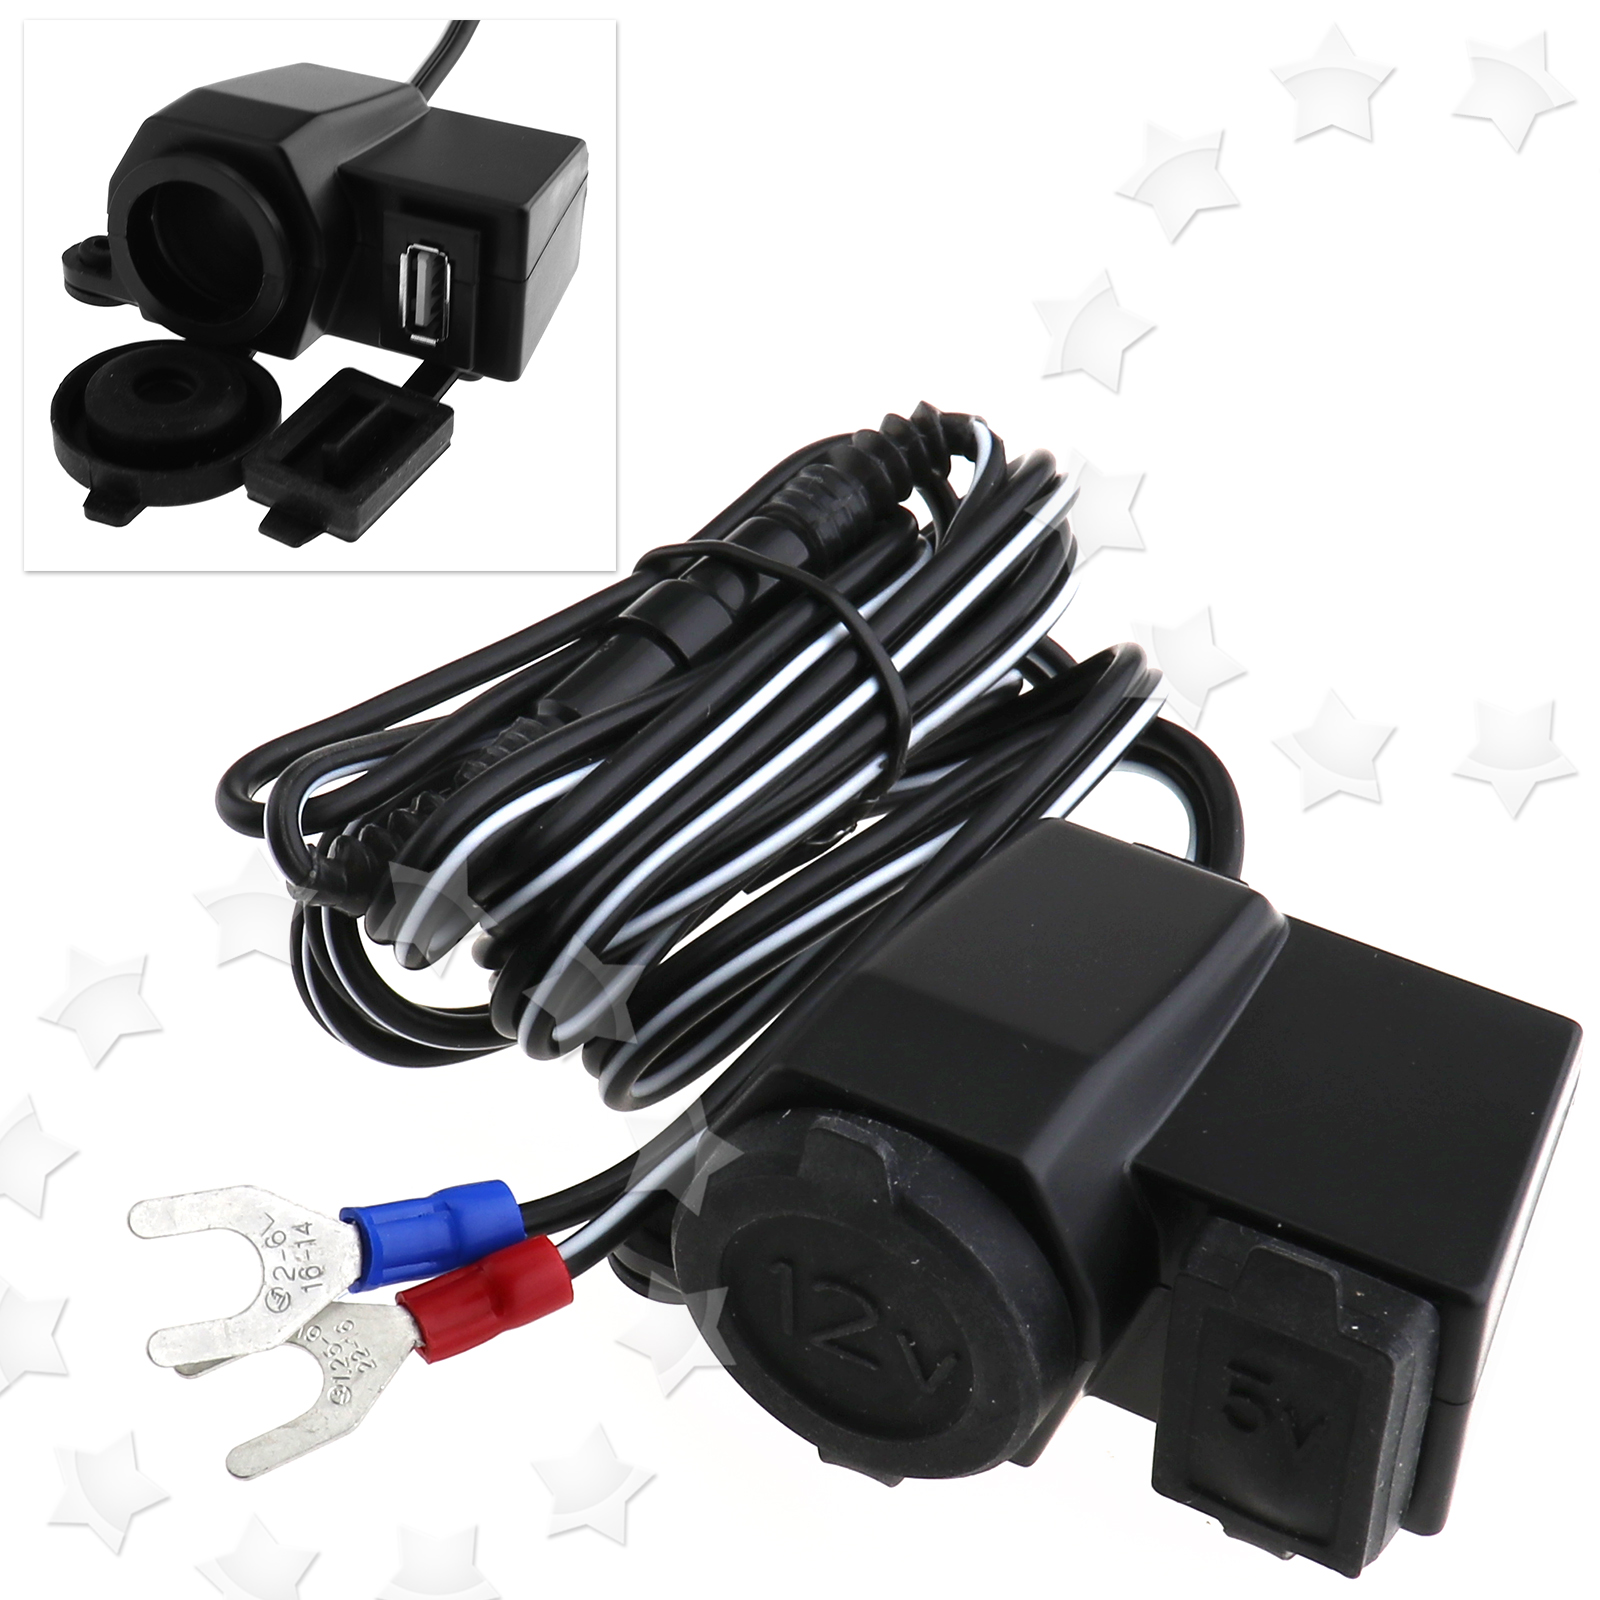 12v Motorbike Cigarette Lighter Socket Adapter Usb Power Phone Charger With Fuse 735548268499